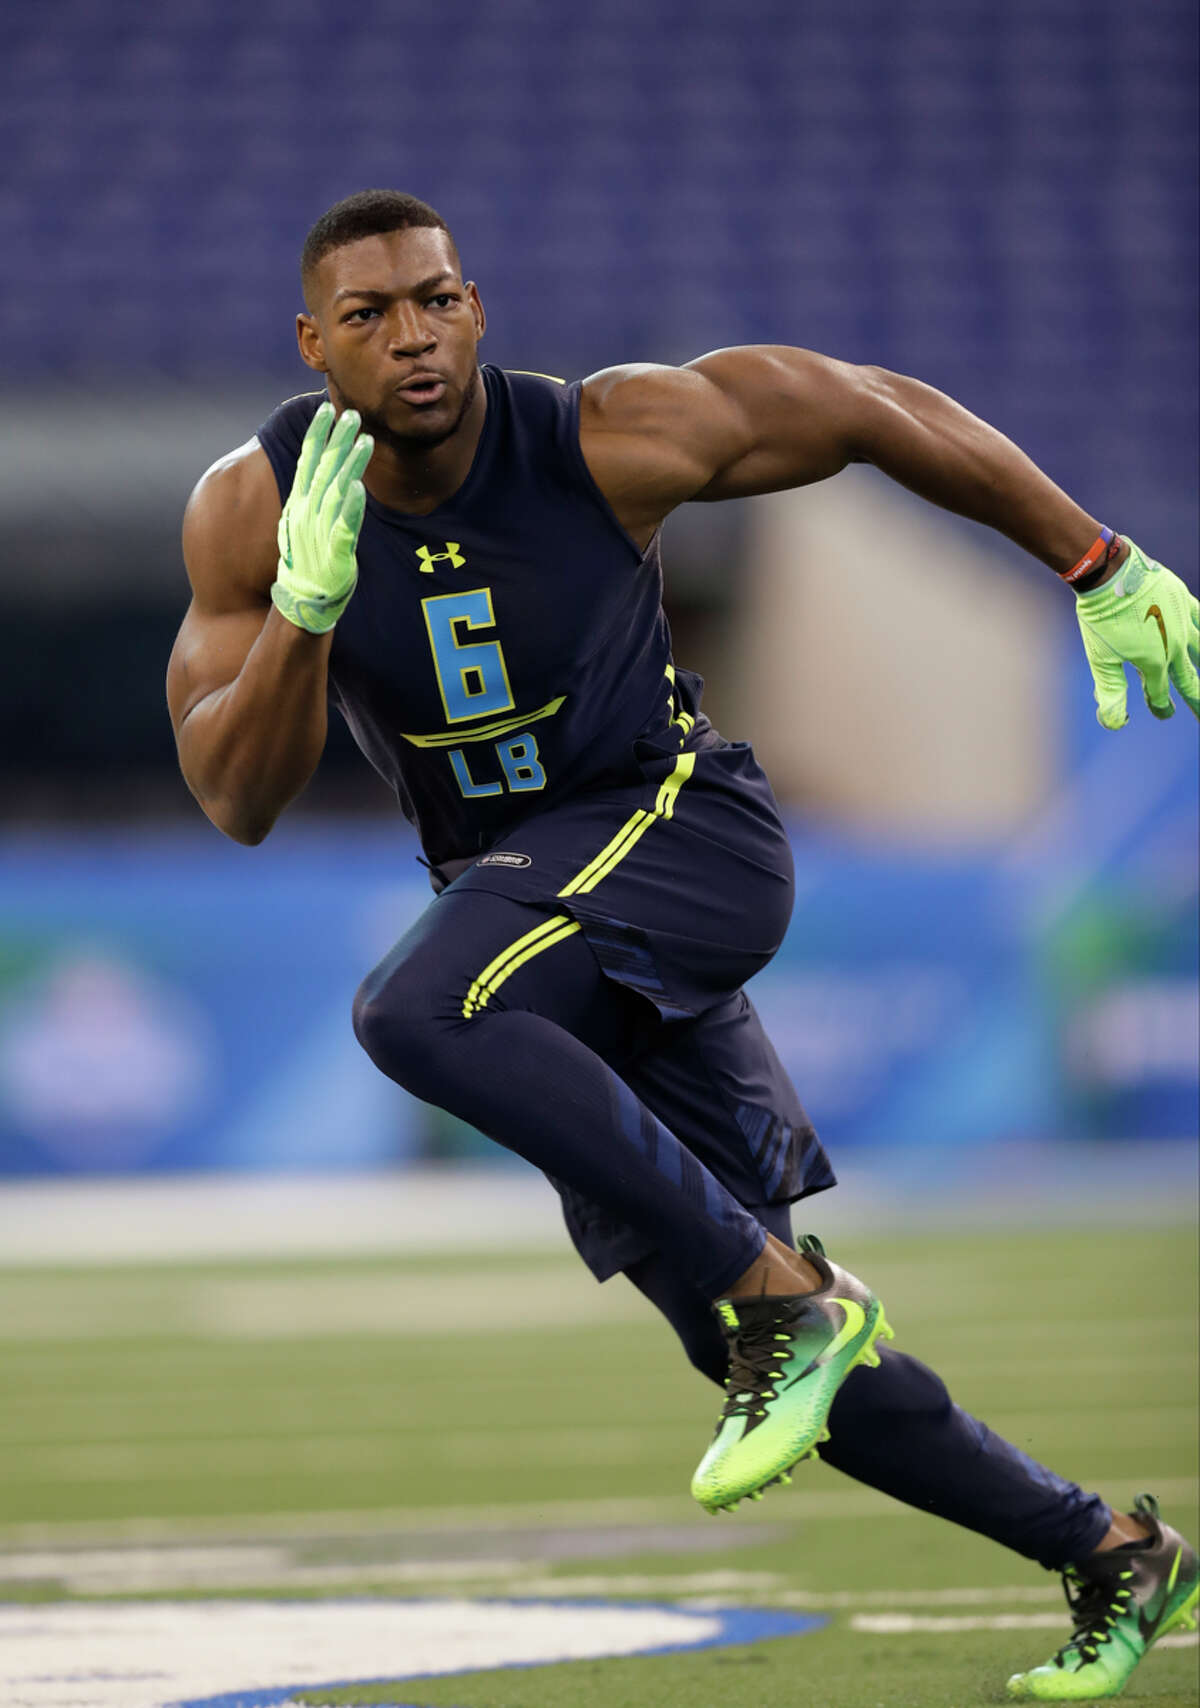 UH linebacker Tyus Bowser ran the 40-yard dash in 4.65 seconds at the NFL scouting combine.